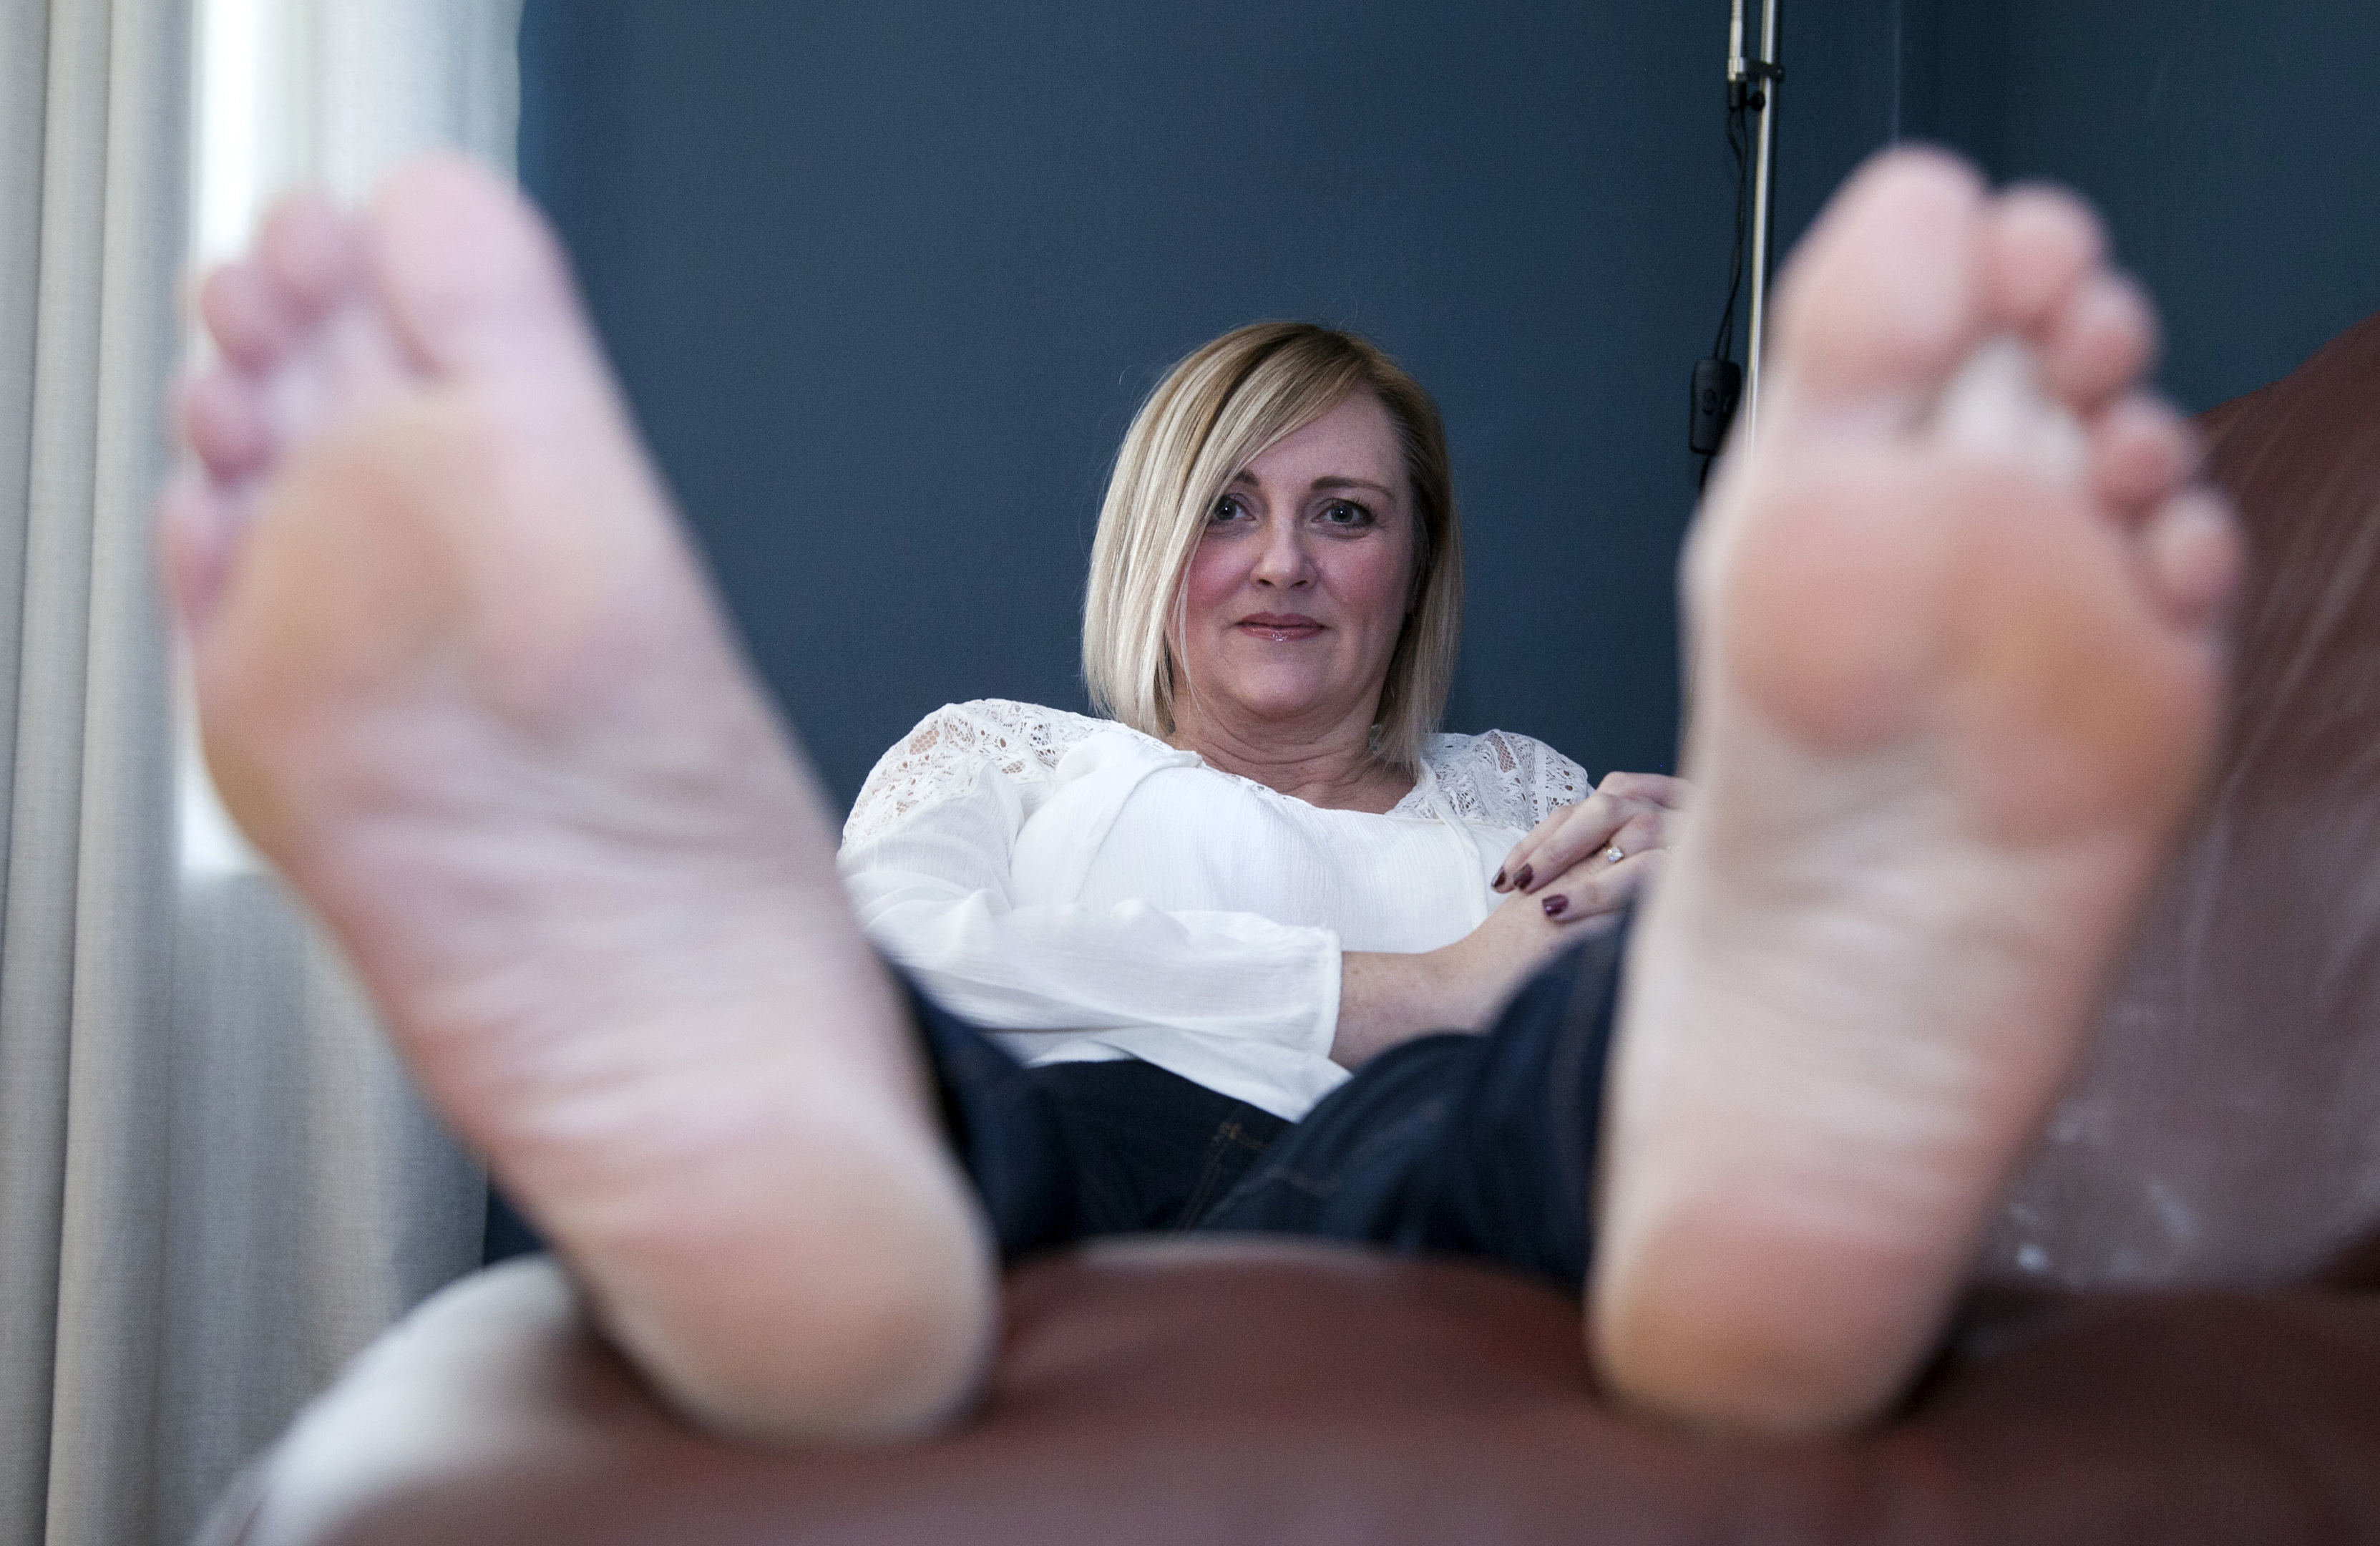 Denise Brown broke her foot going back to the clinic for a check up on her bunions (Alistair Linford)